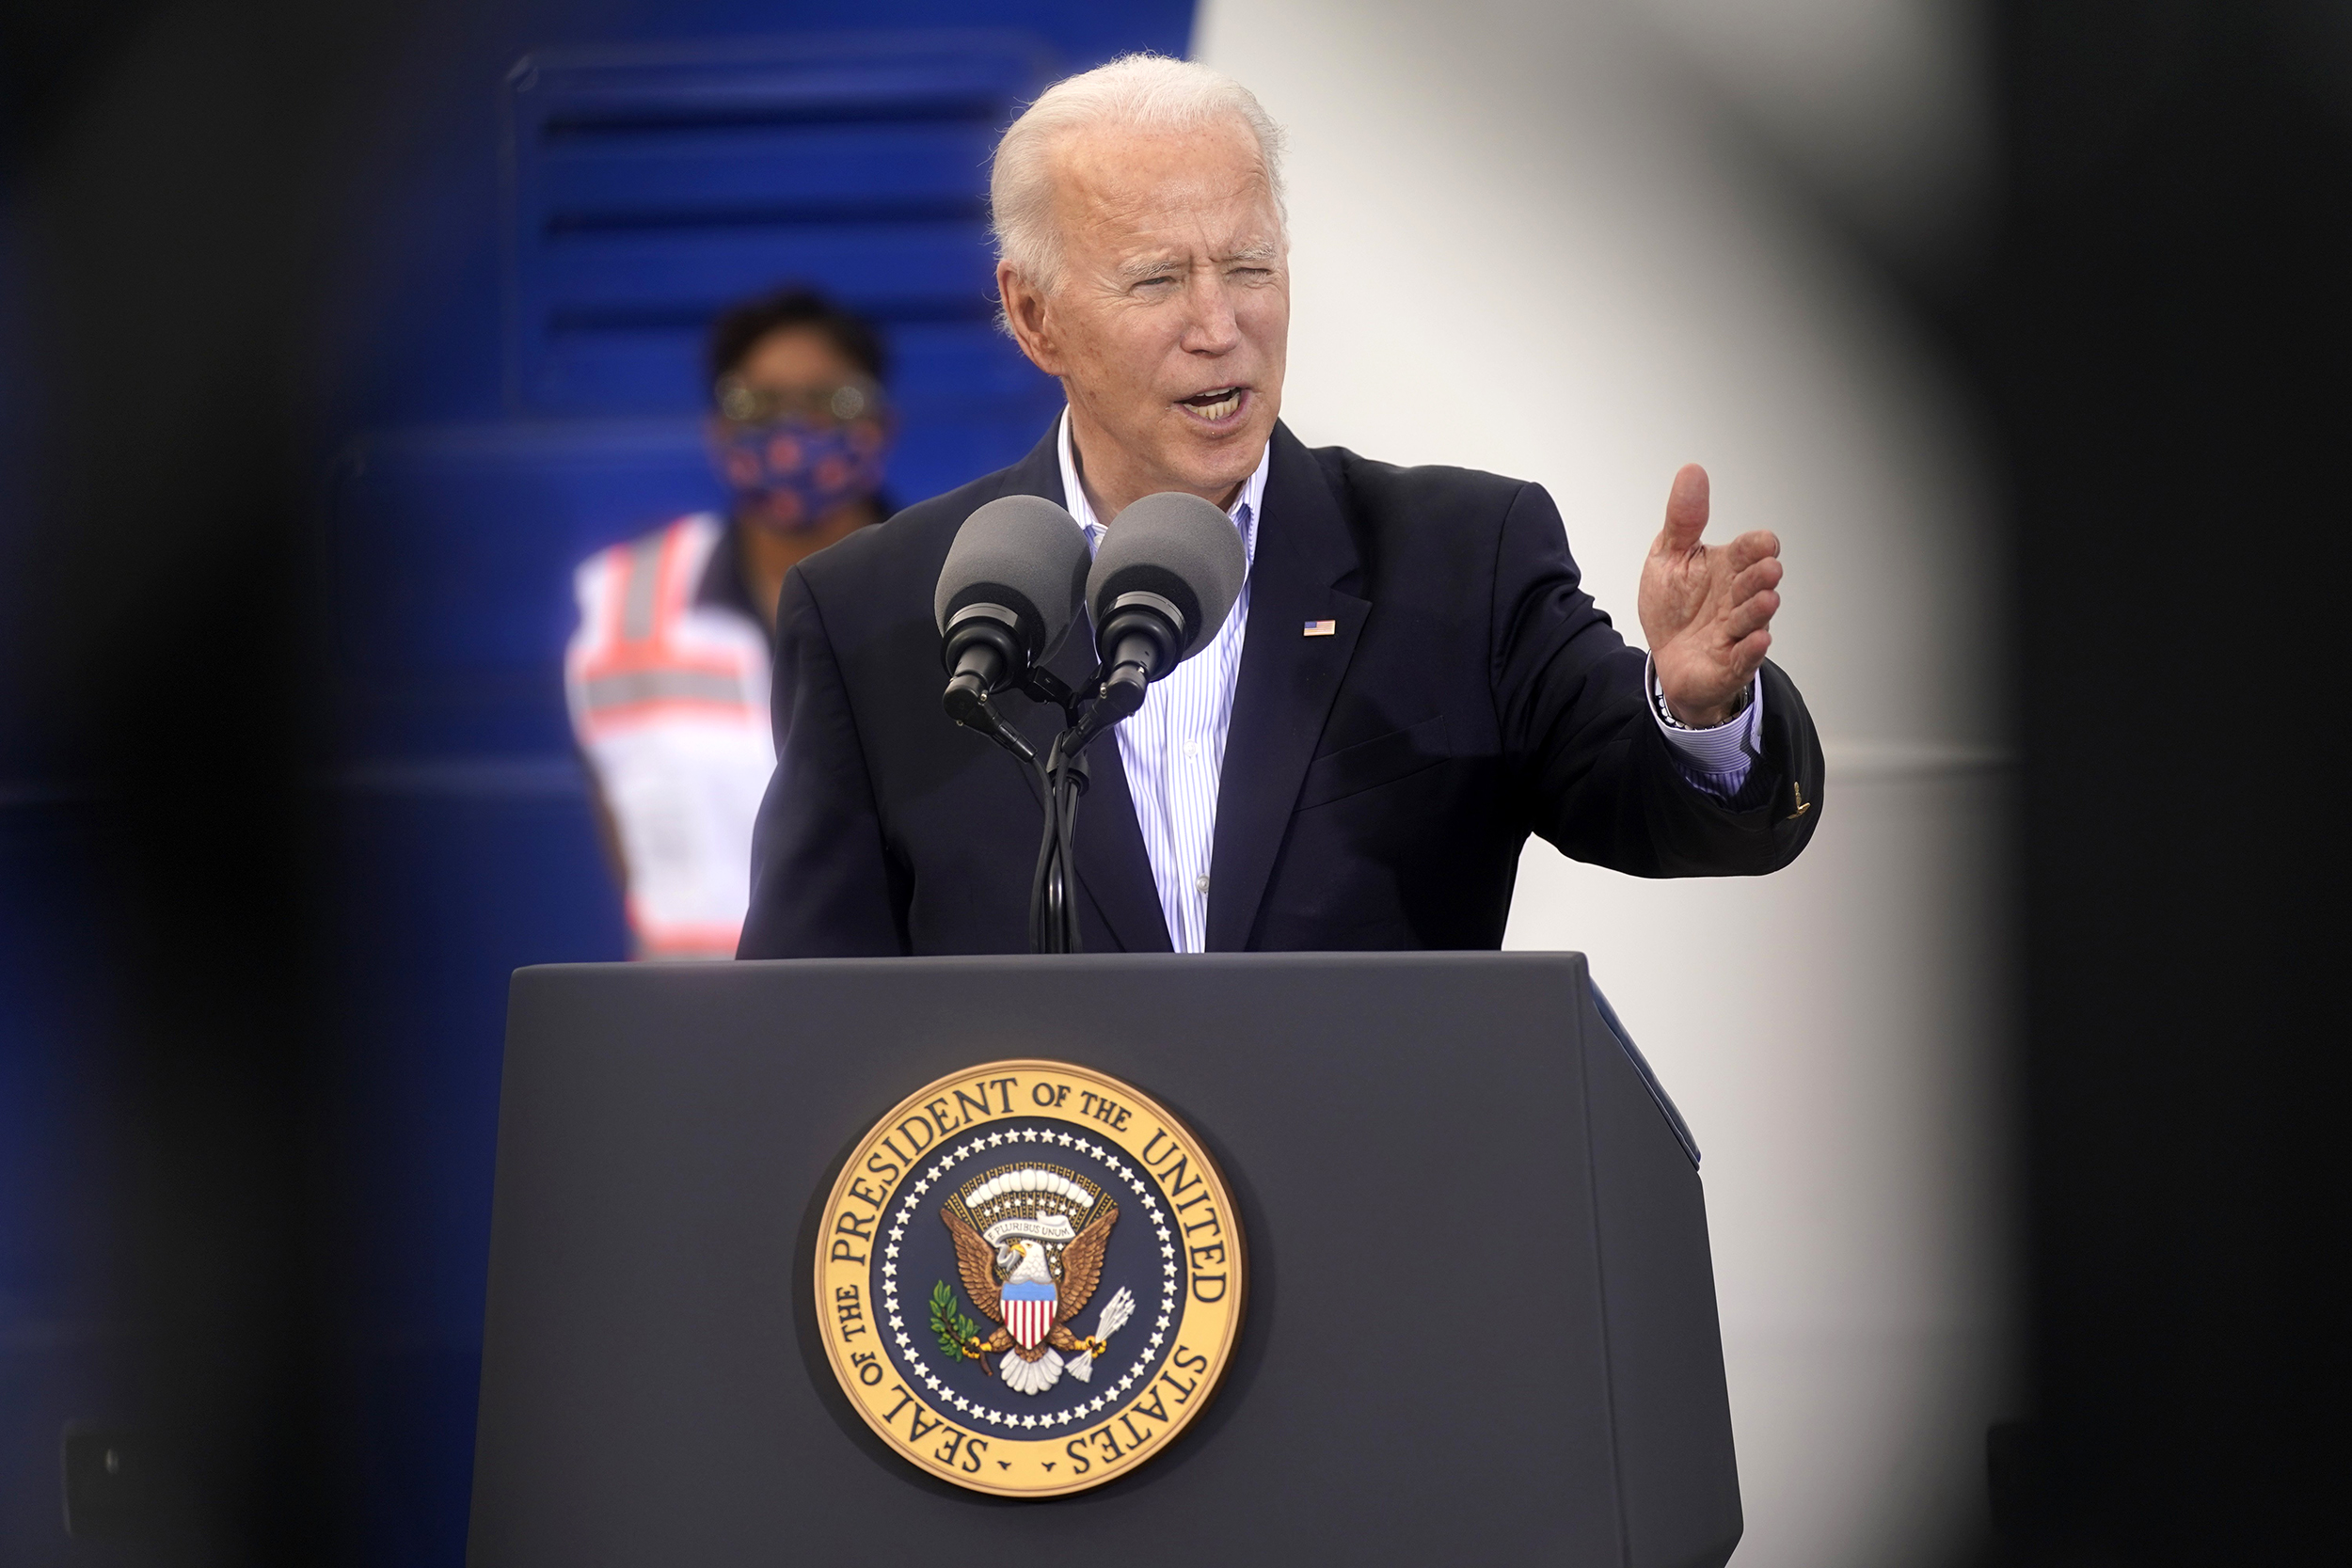 Biden says ICE will not target undocumented immigrants at Covid-19 vaccination sites